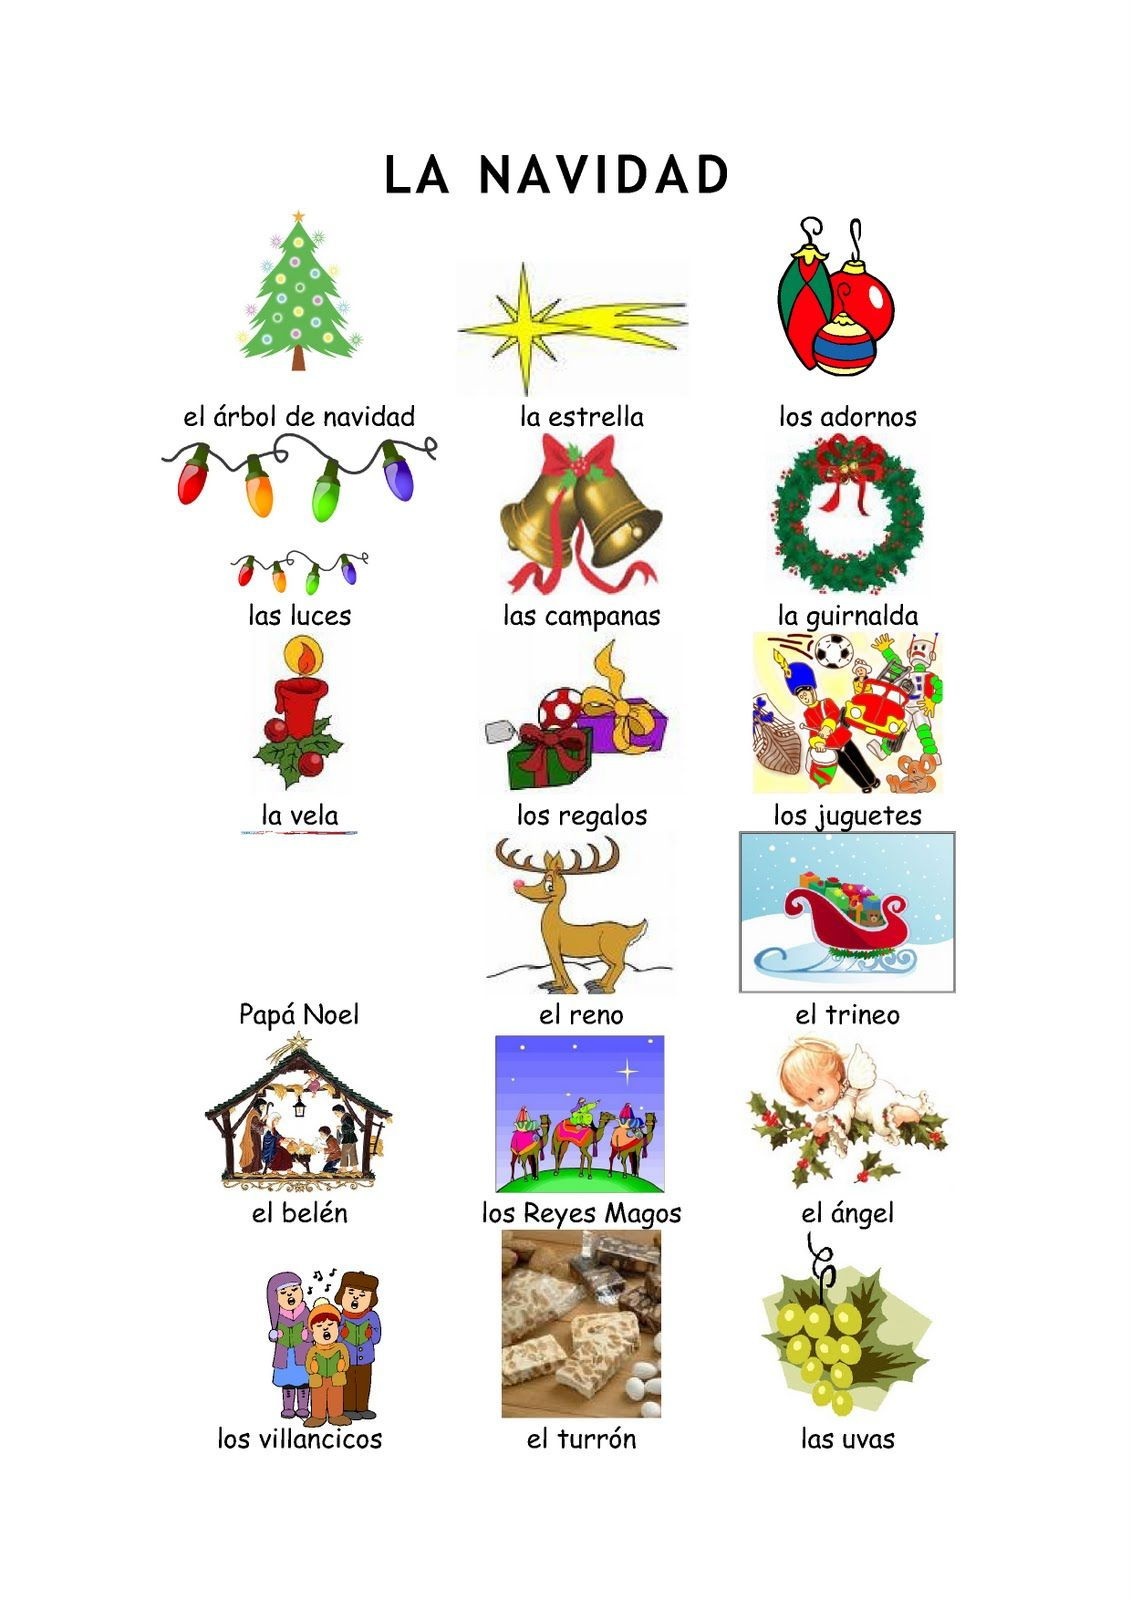 Christmas Spanish.Christmas Spanish Vocabulary Vocabulario De La Navidad